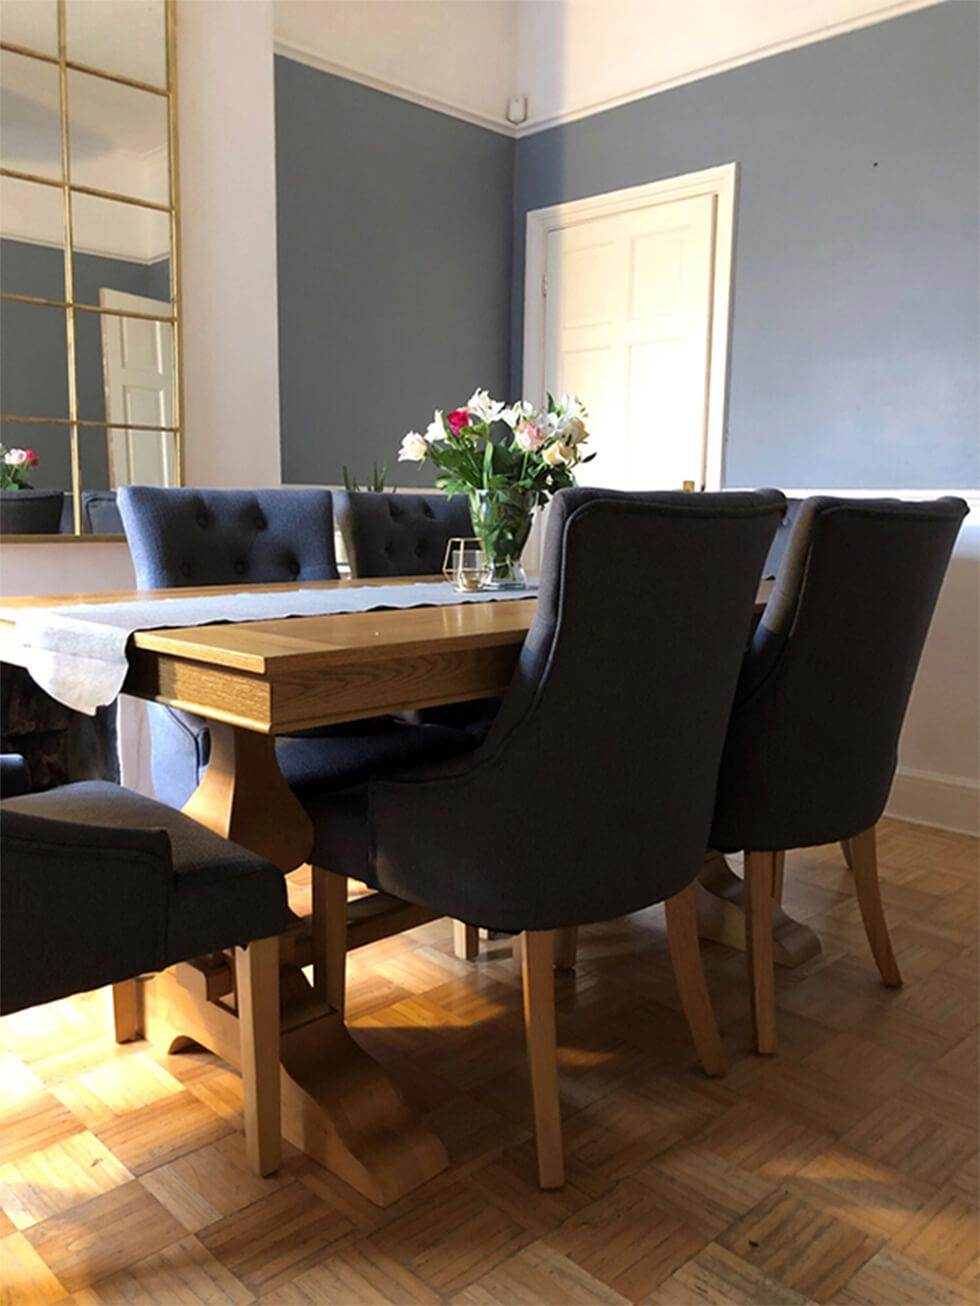 Traditional wooden dining set in the dining room